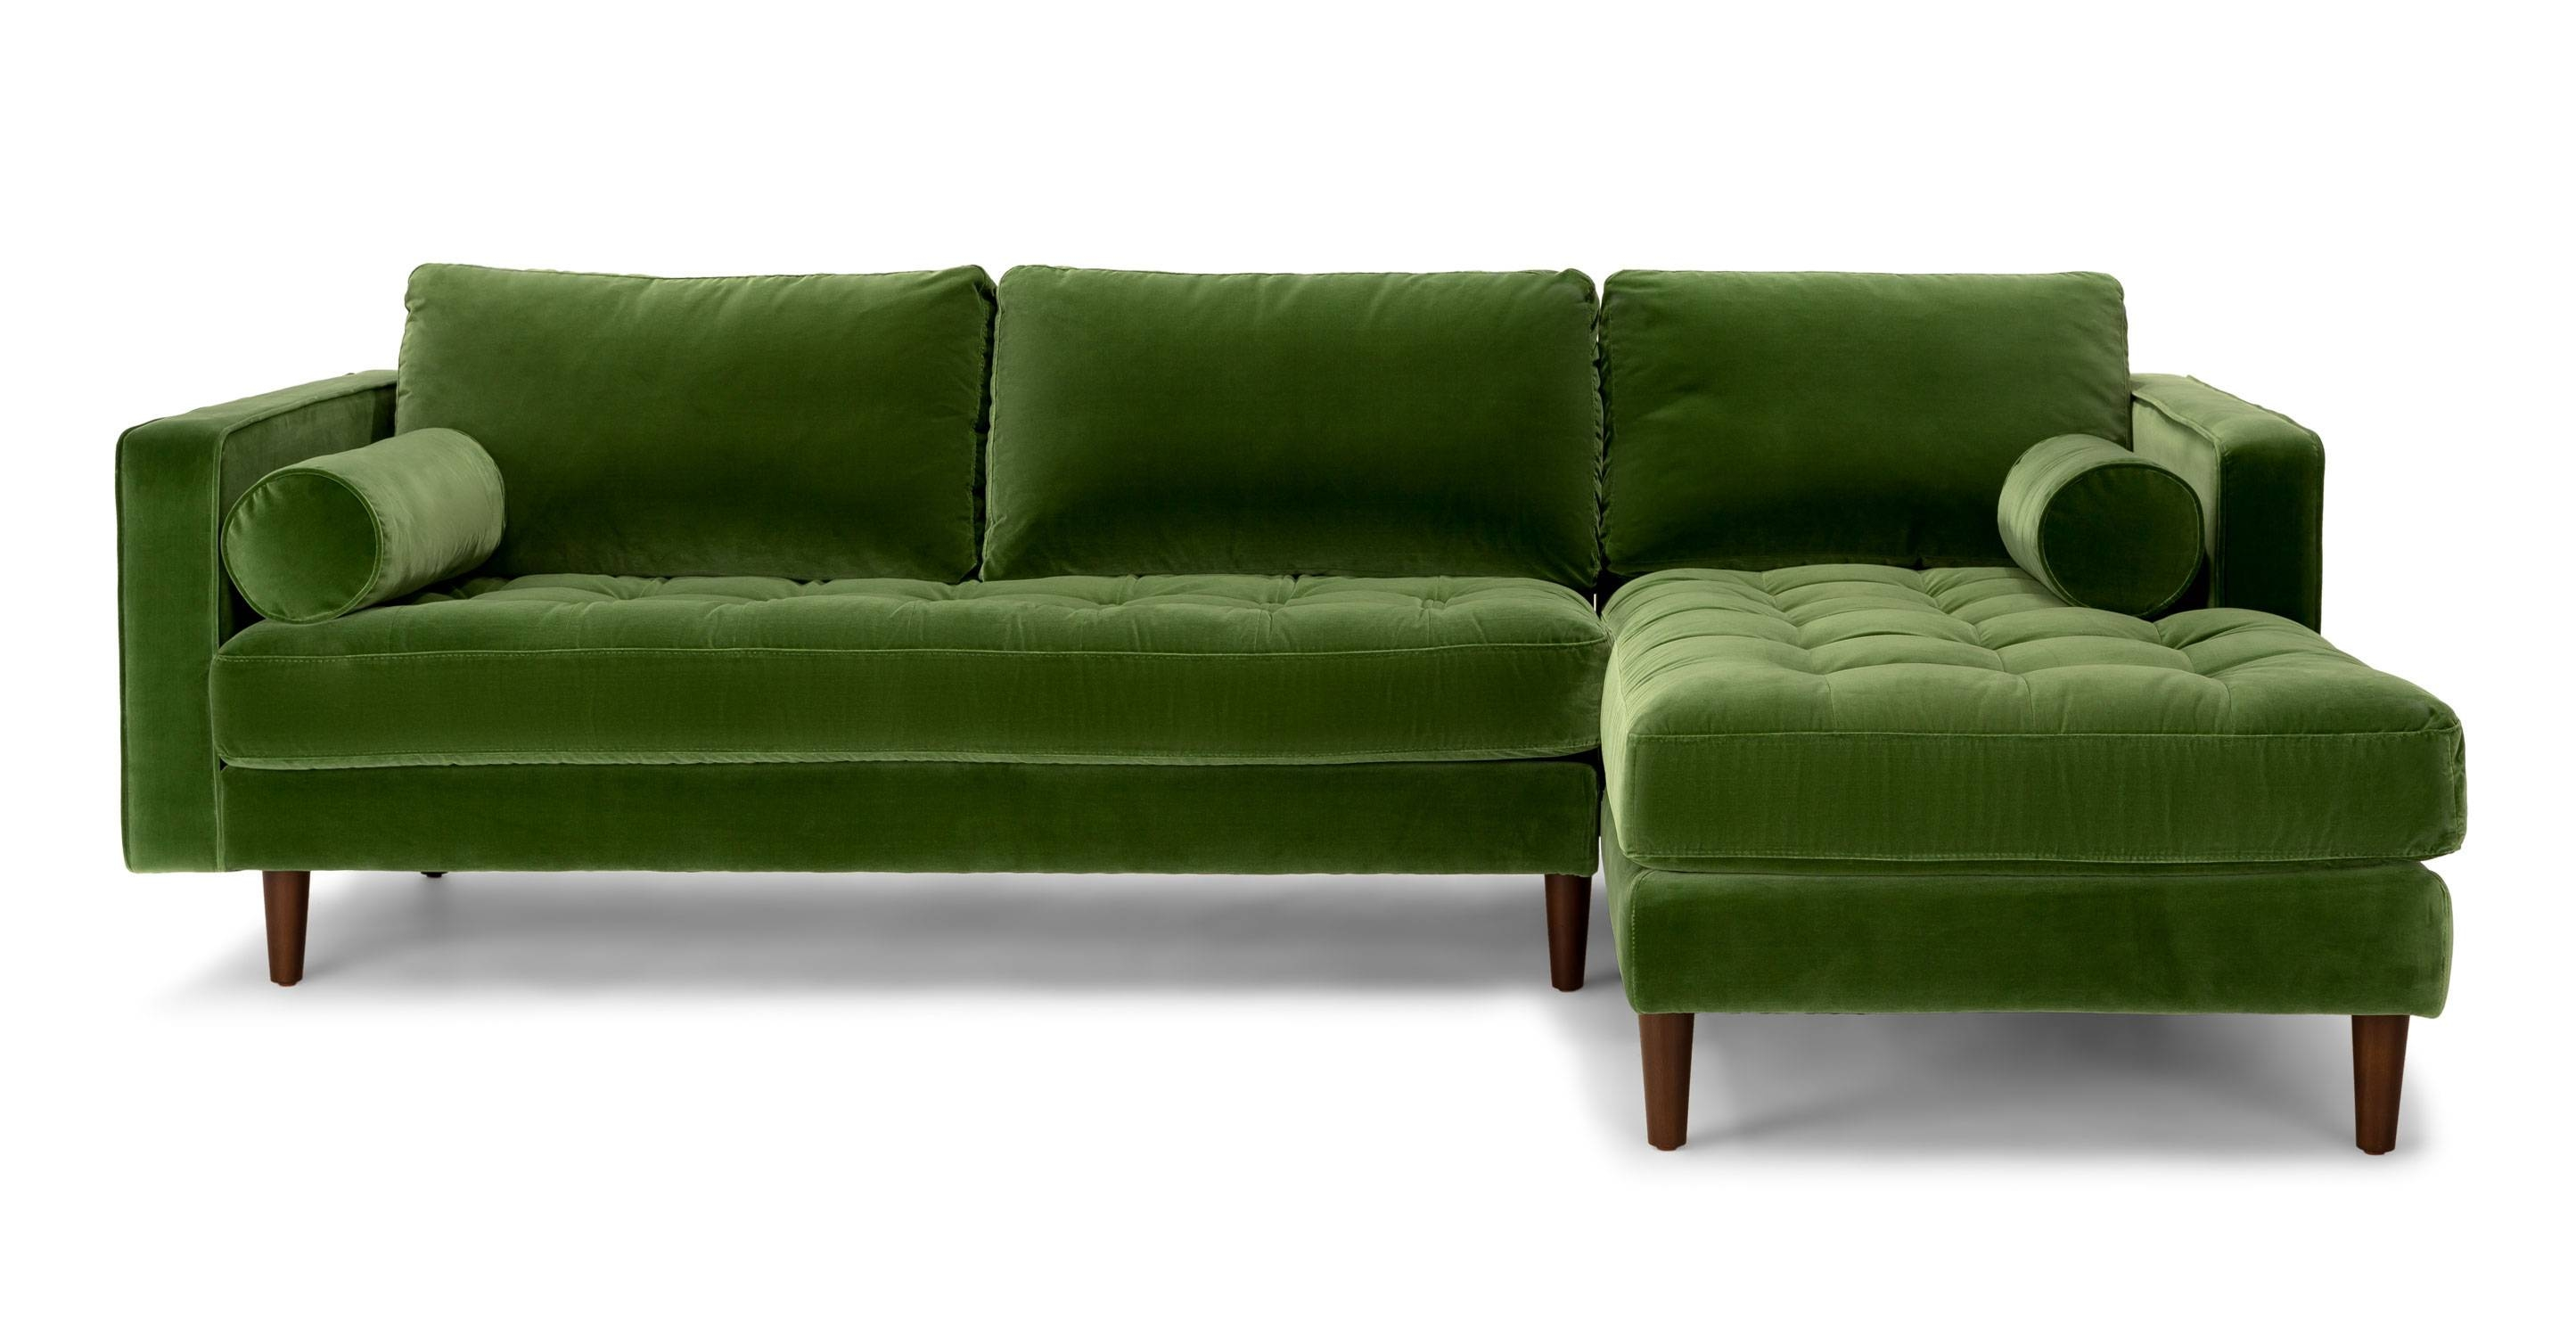 Green Sectional Sofa | Demand Sofas Set regarding Green Sectional Sofa (Image 15 of 30)